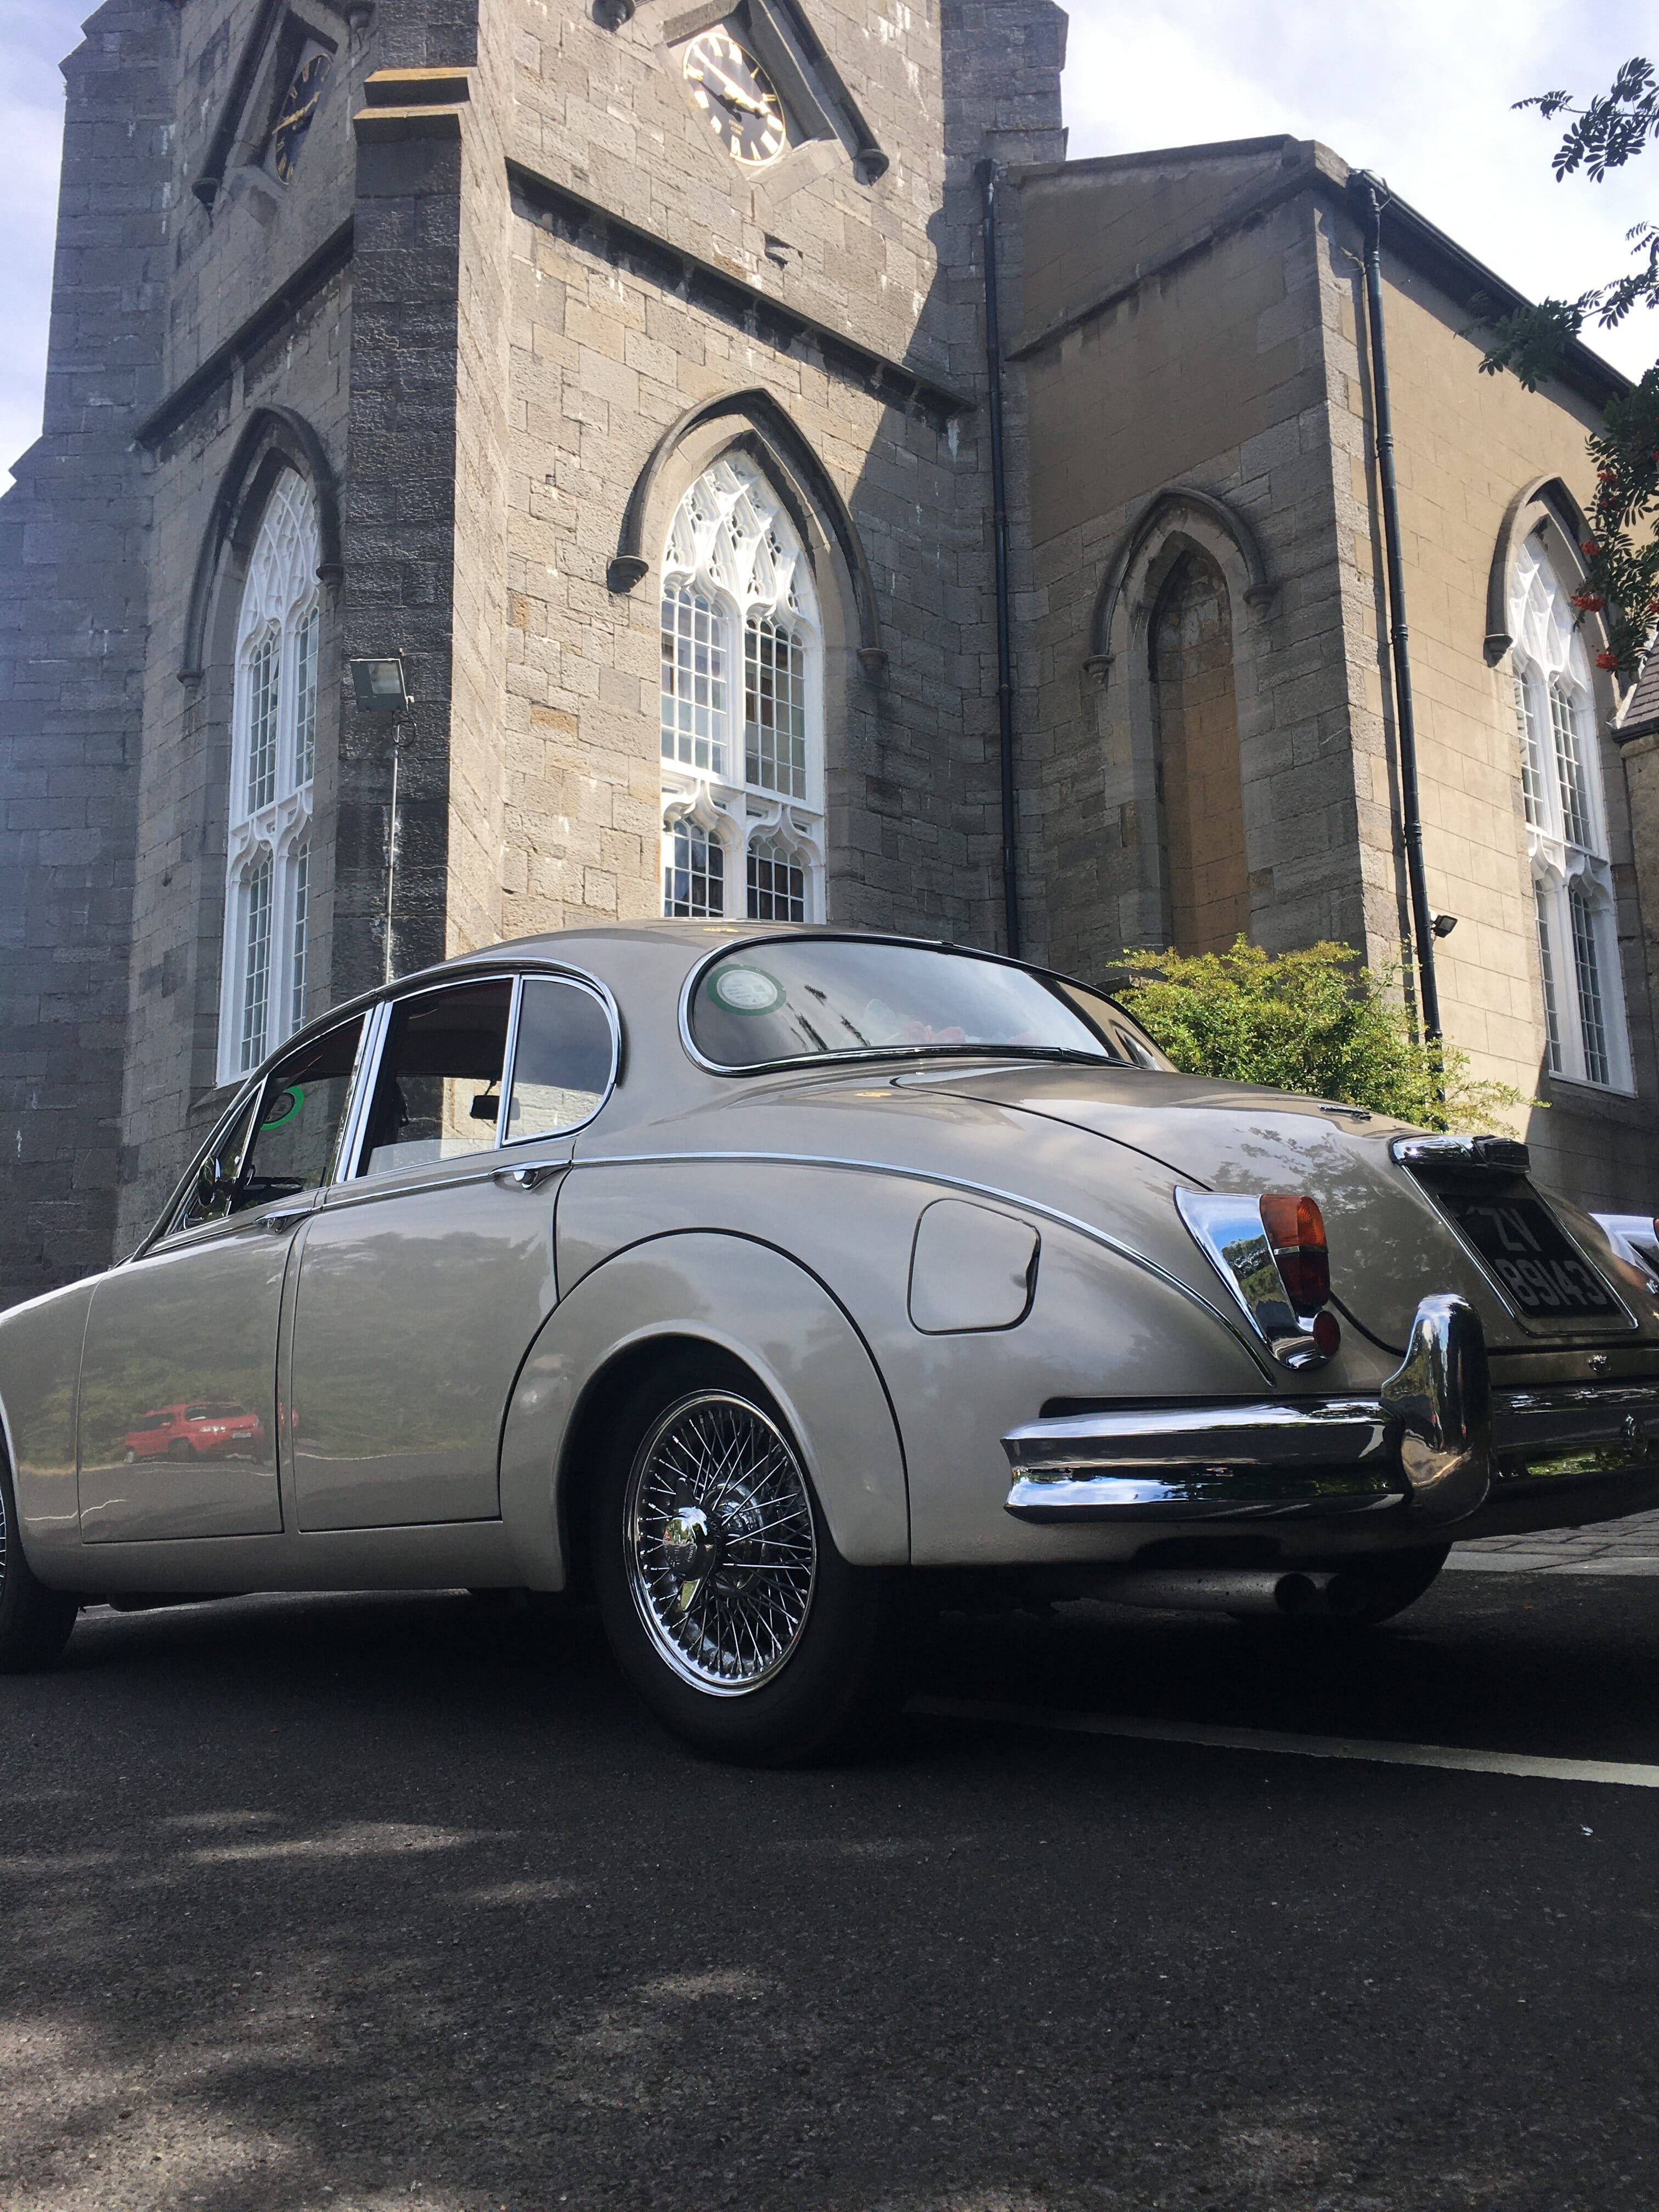 one of our Classic Jaguar wedding cars